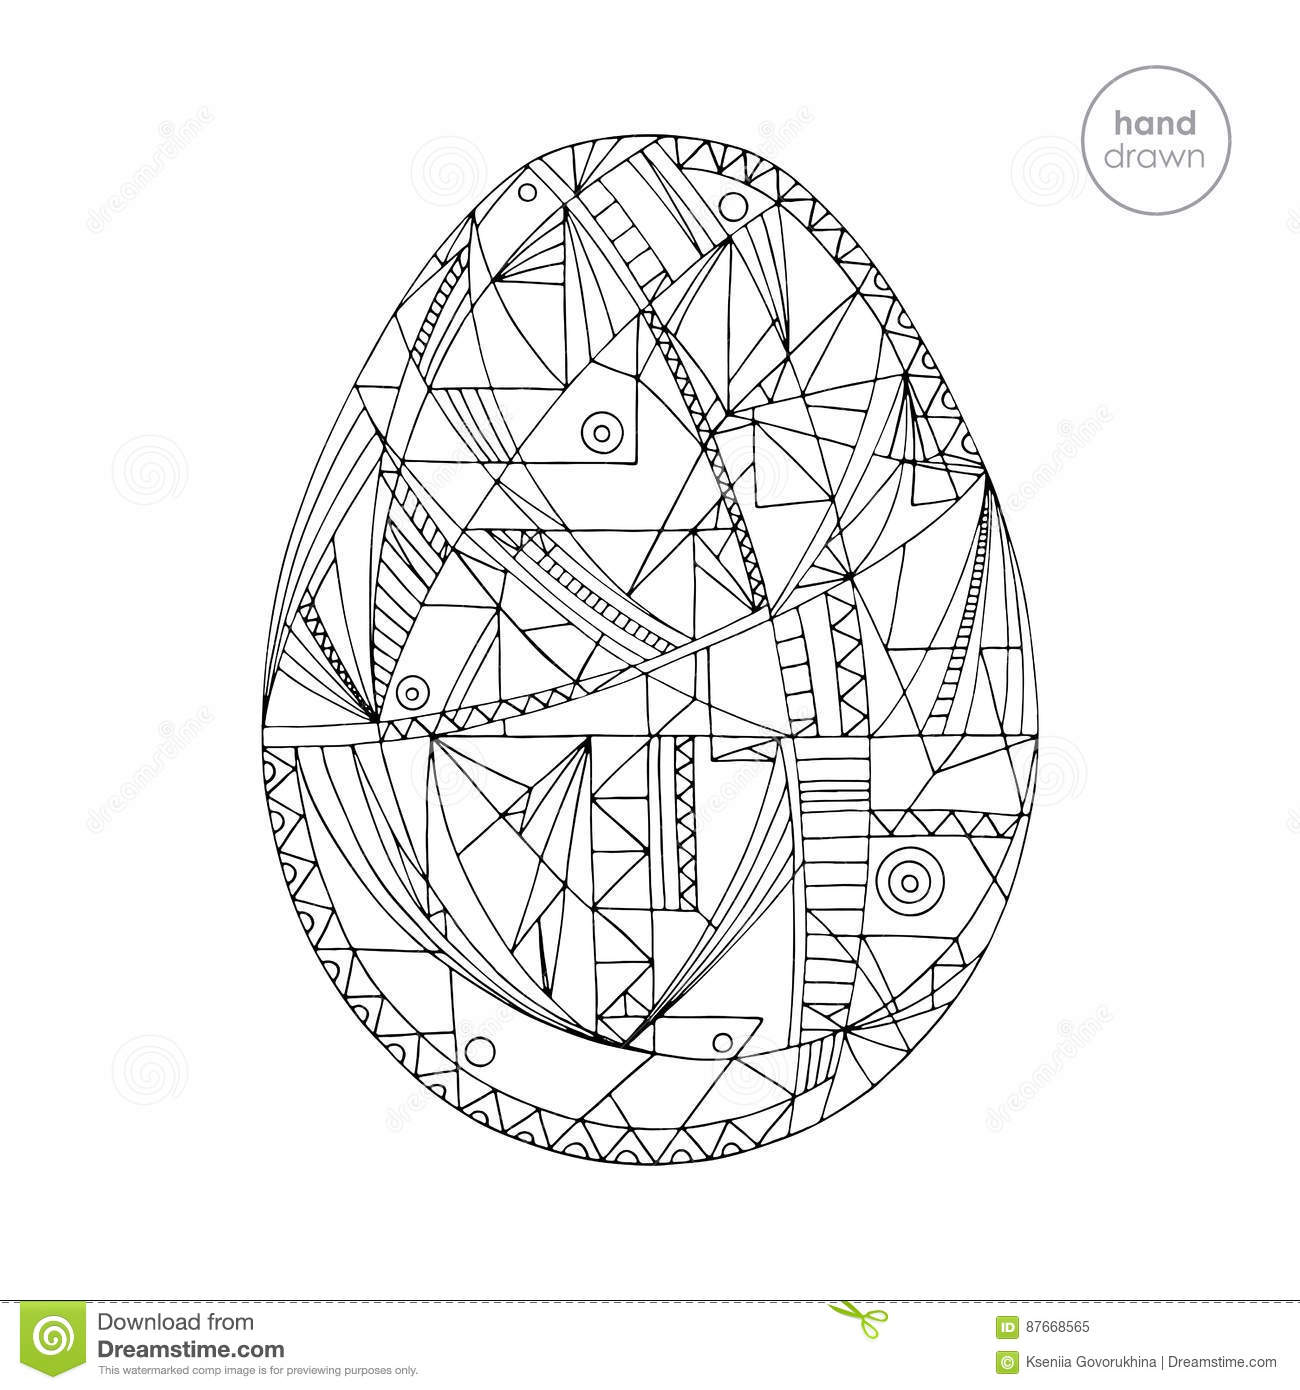 Abstract Easter Coloring Pages : Easter egg vector illustration hand drawn abstract